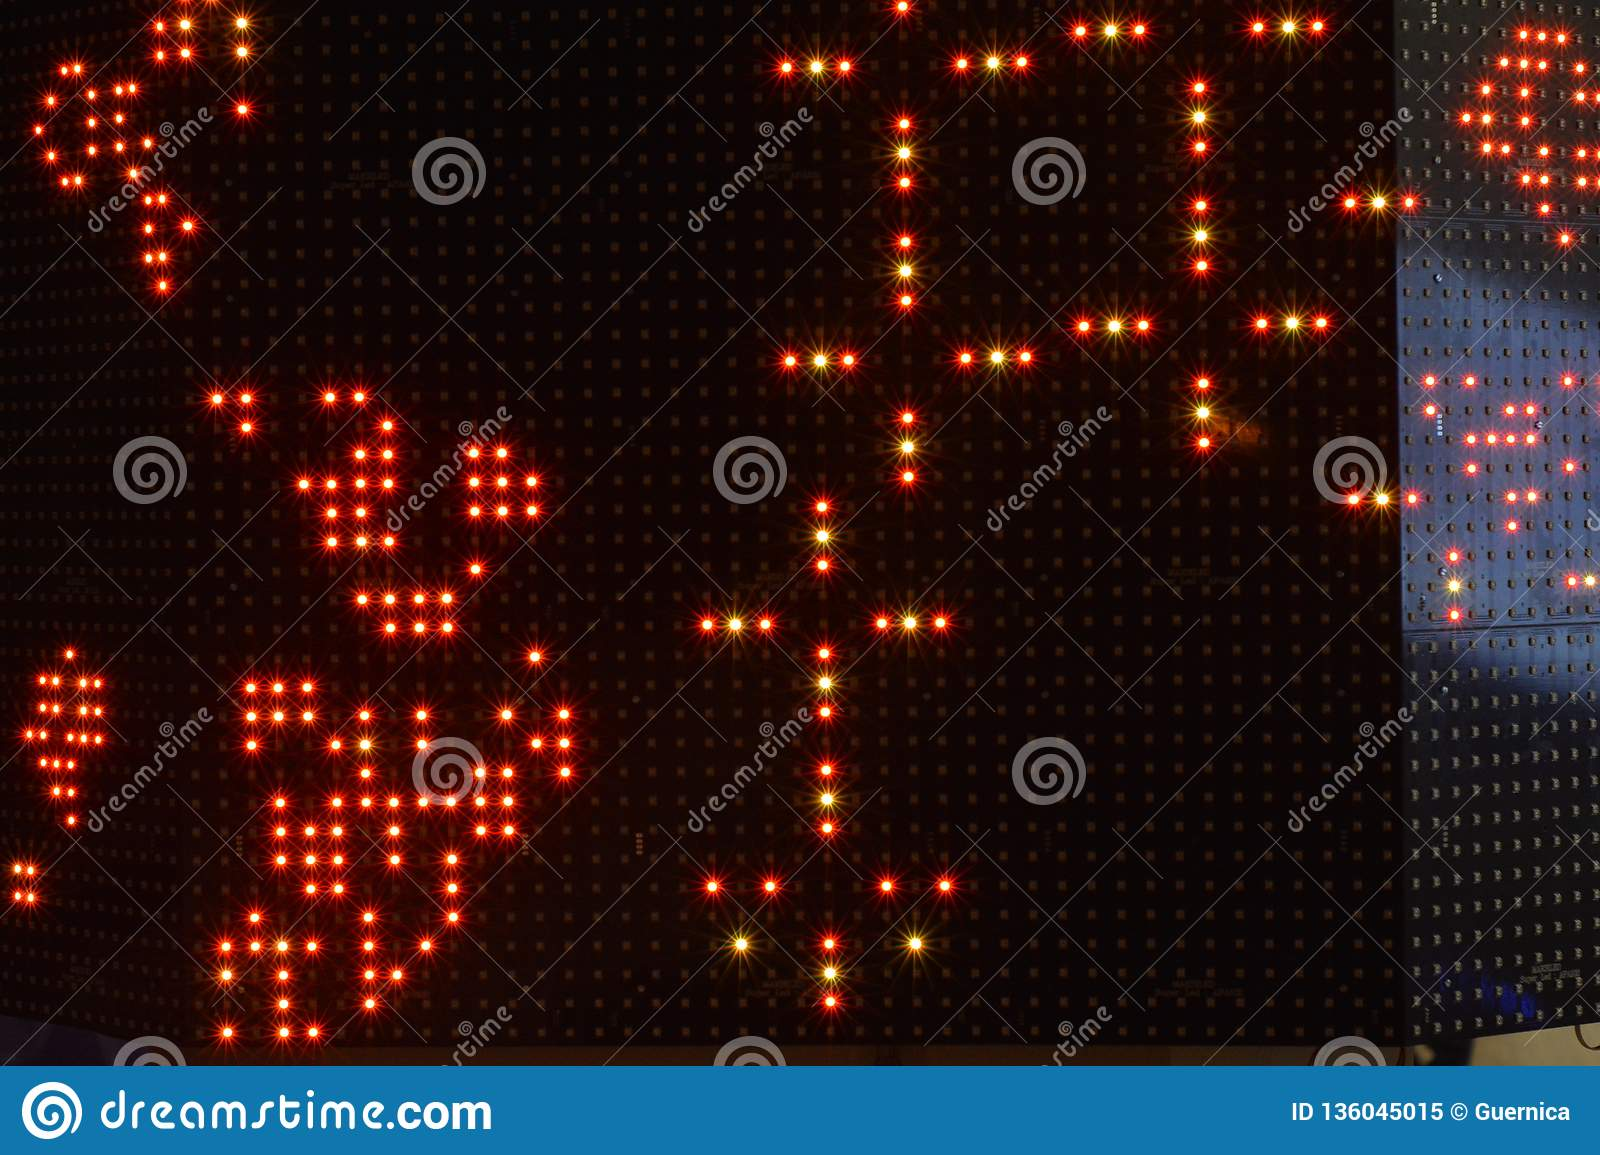 Digital Art Binary Bokeh Background Karlsruhe Stock Image